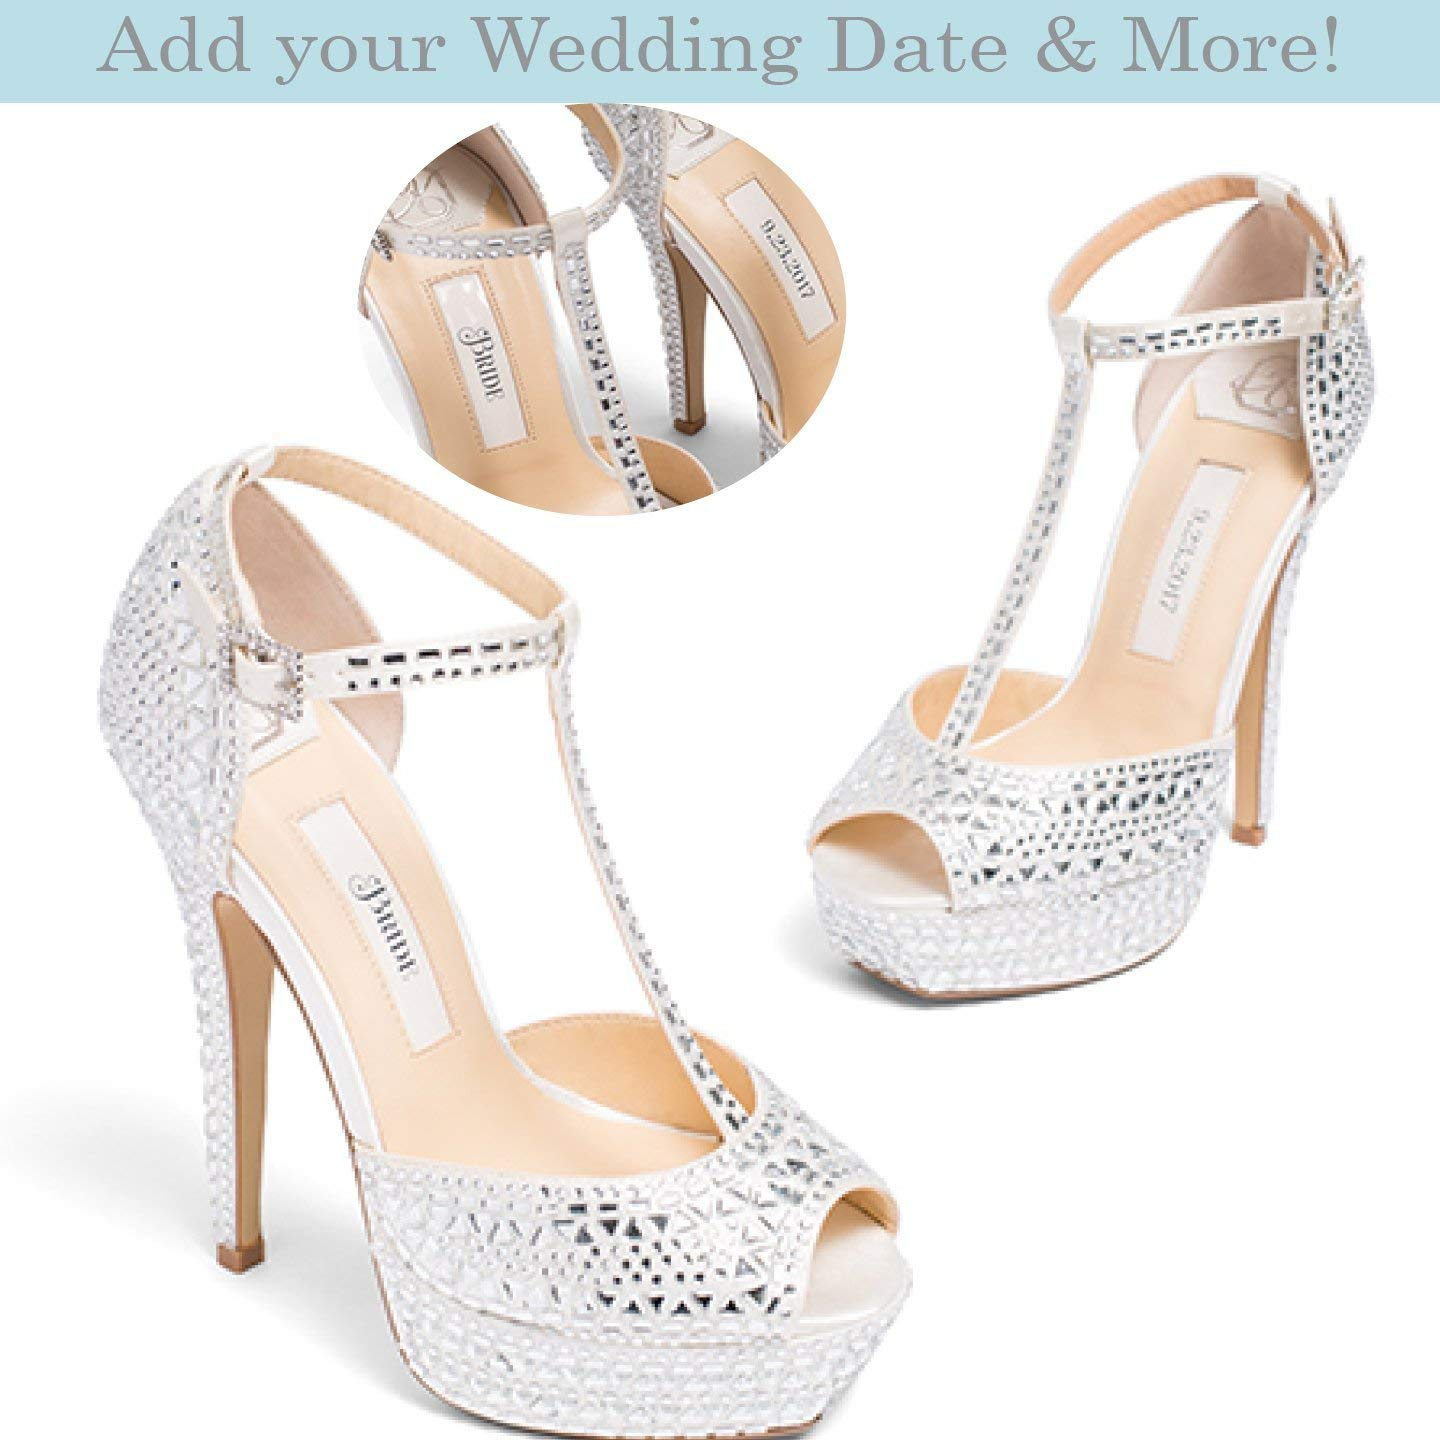 "Bridal Women's Platform High Heel Satin Wedding Shoe with Rhinestone Encrusted Heel in Ivory– Kate Whitcomb Shoes style ""Bianca"""